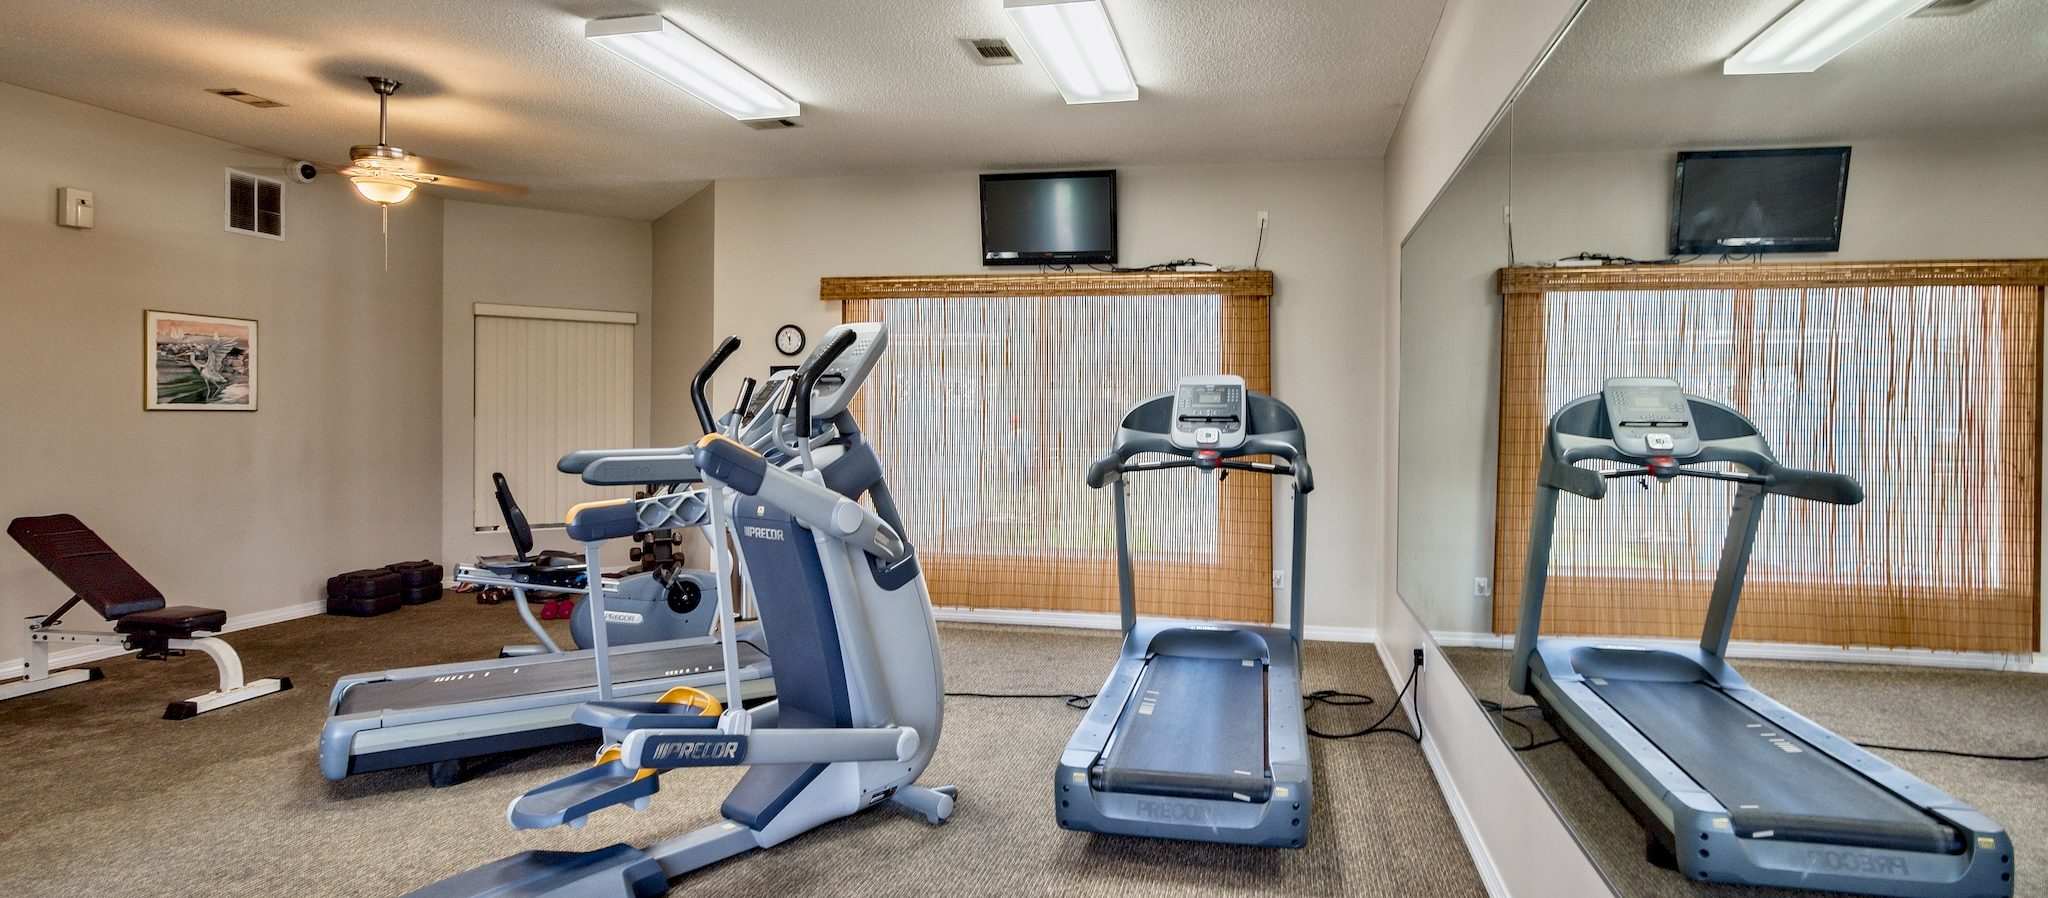 Fitness center with workout equipment.